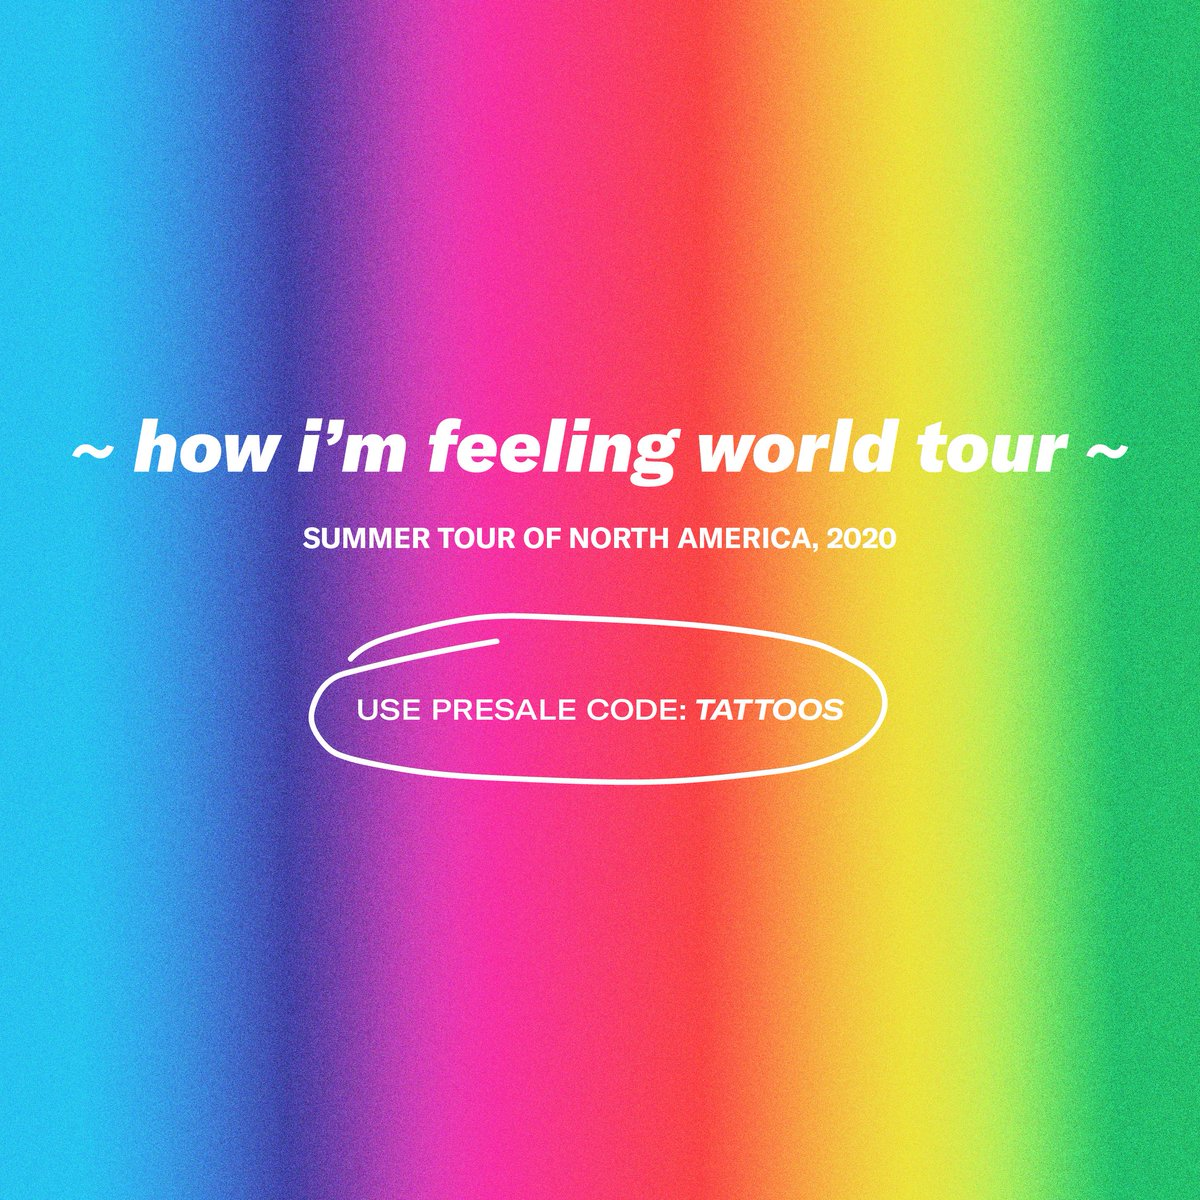 NORTH AMERICA, GET PRESALE TICKETS TODAY 10AM LOCAL TIME USING CODE TATTOOS lauvsongs.com